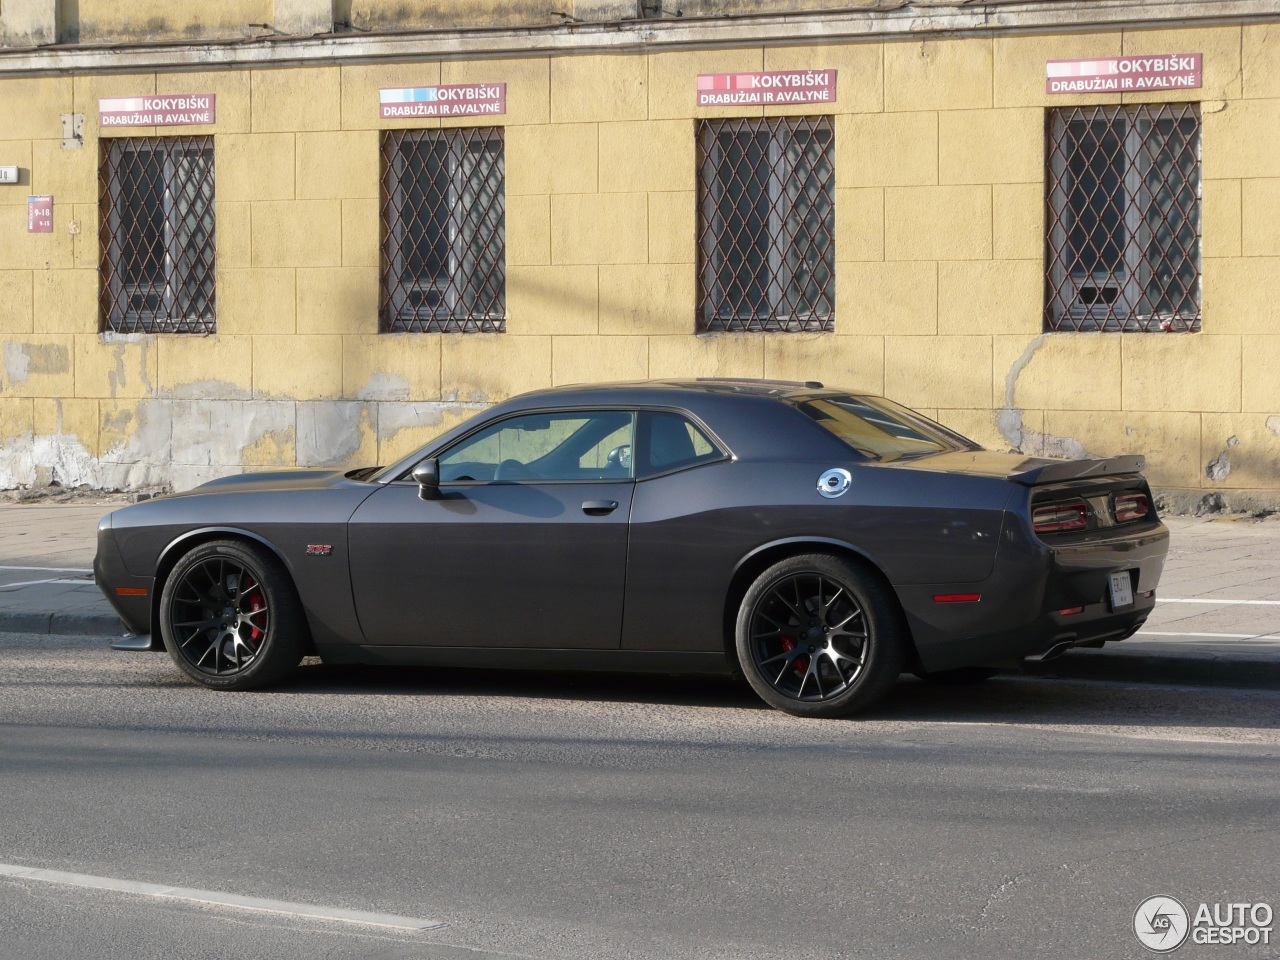 dodge challenger srt 8 392 2015 27 may 2016 autogespot. Black Bedroom Furniture Sets. Home Design Ideas